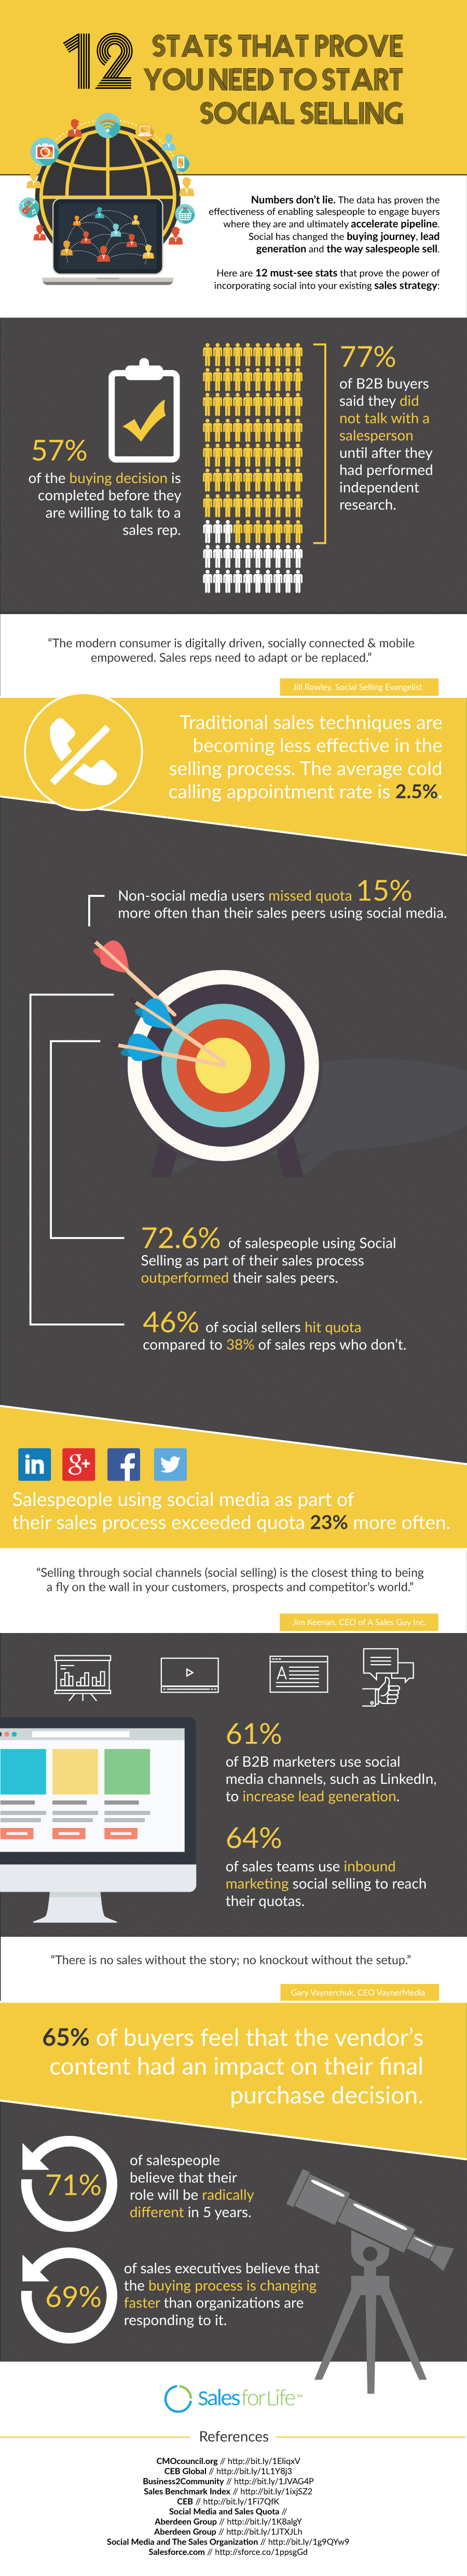 12-stats-that-prove-you-need-to-start-social-selling1.jpg